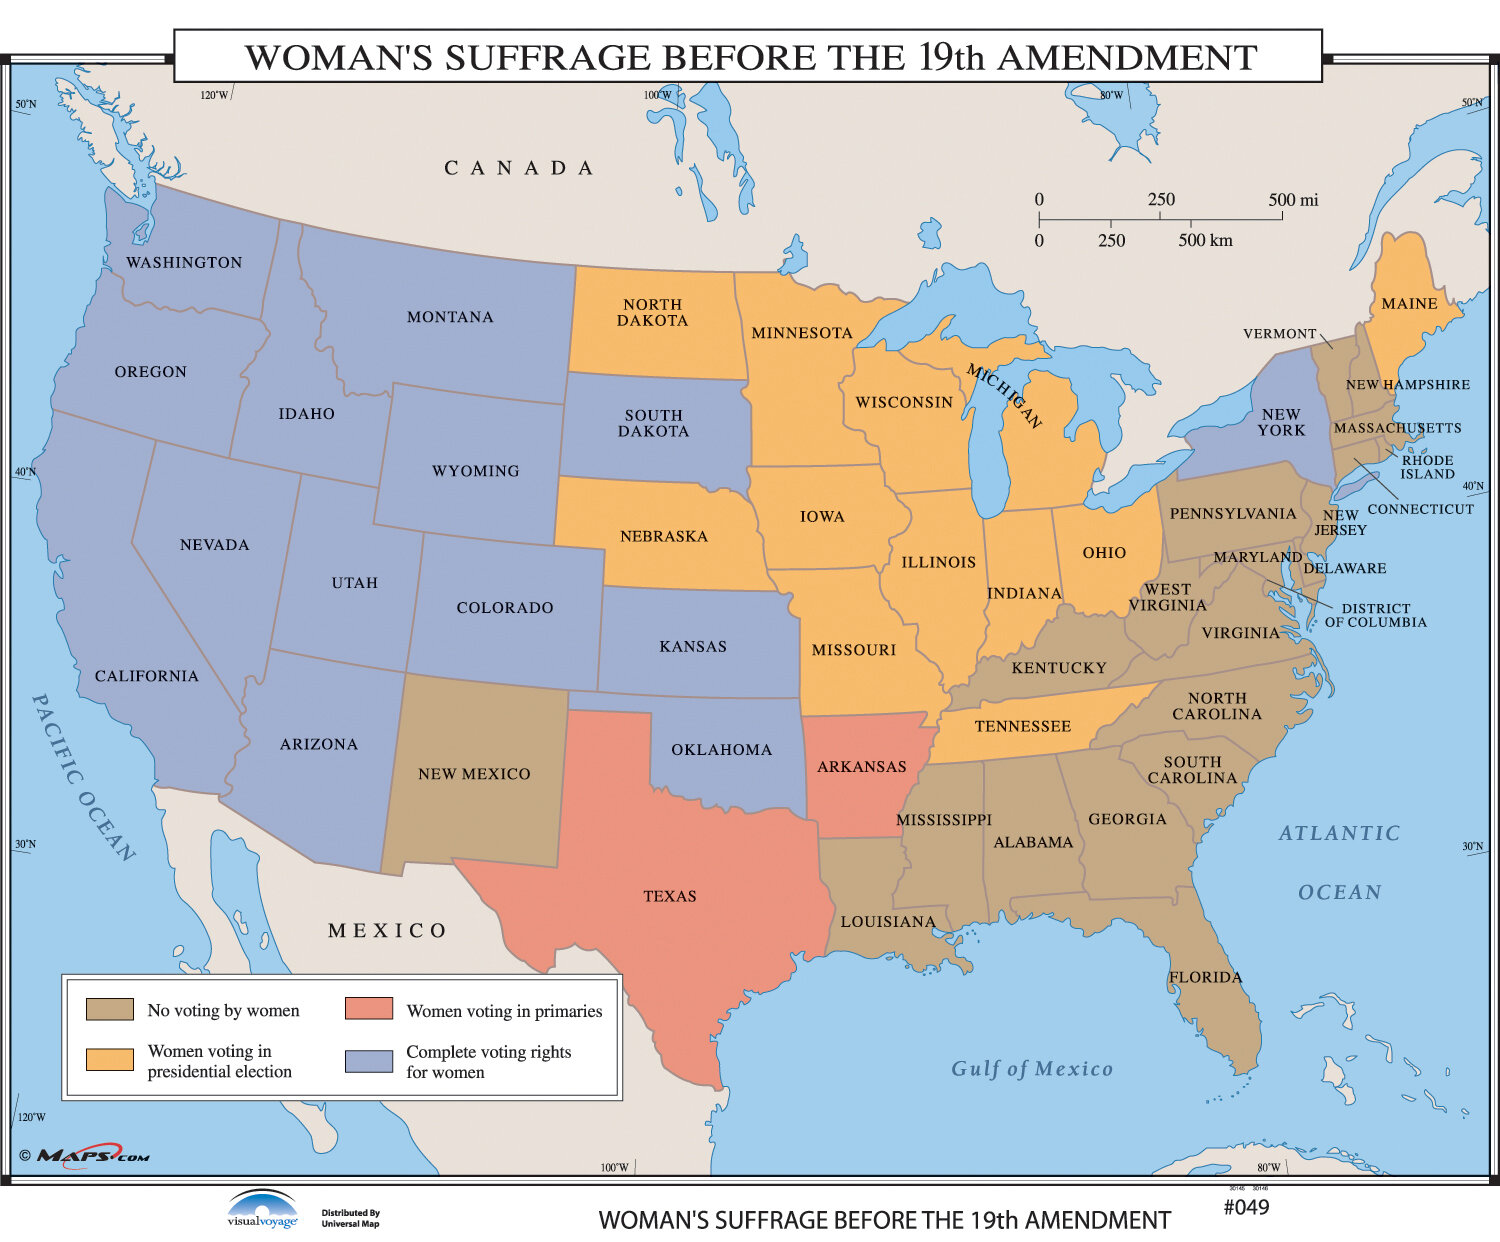 Universal Map U.S. History Wall Maps - Woman\'s Suffrage Before 19th ...